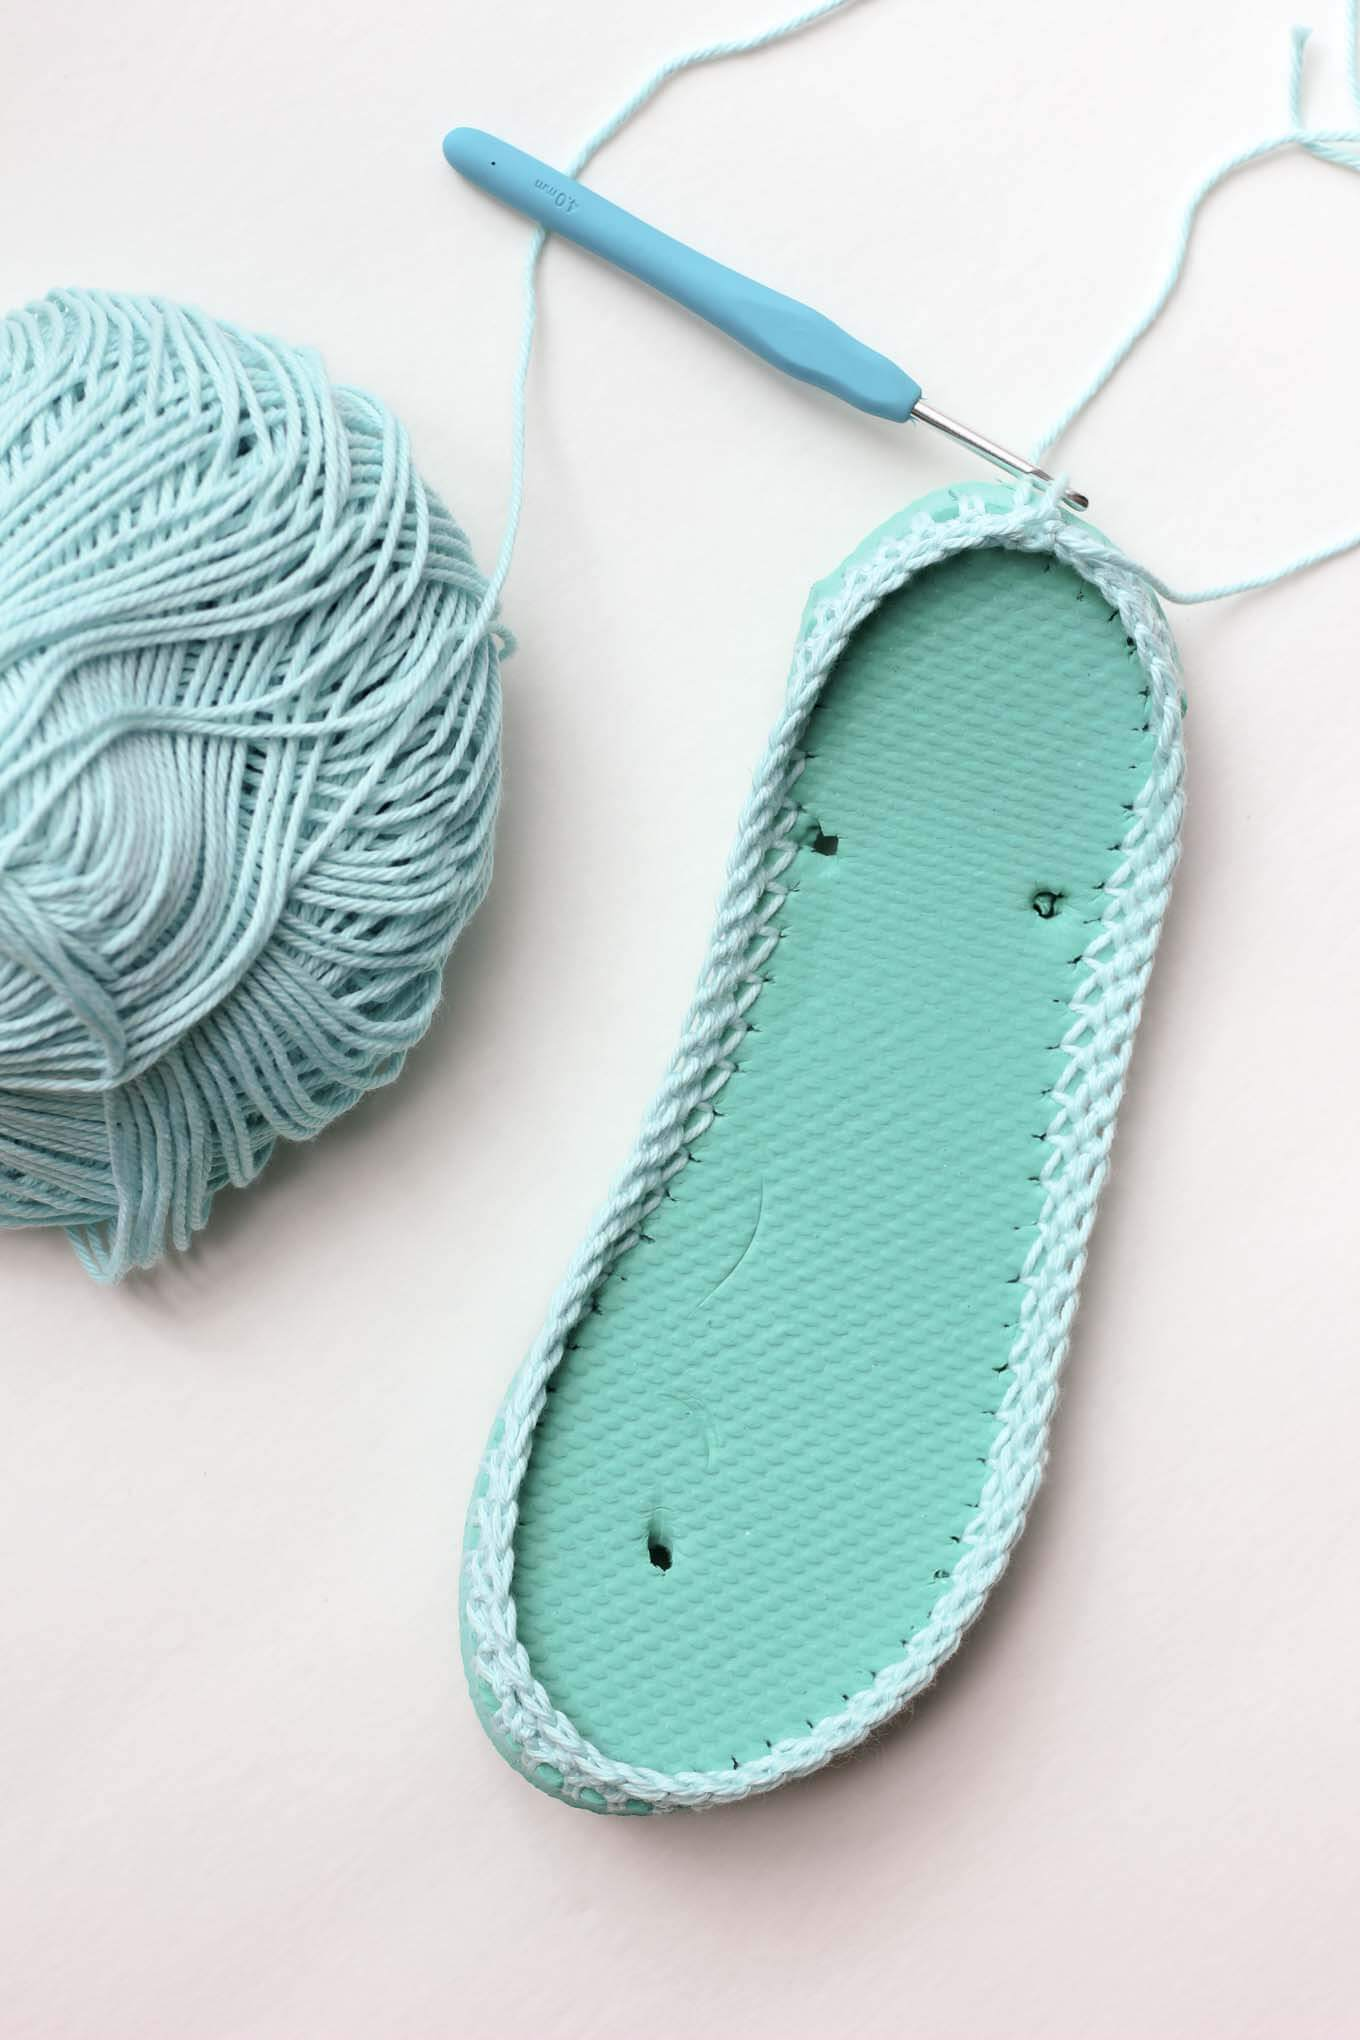 Free Printable Crochet Slipper Patterns : Free Crochet Slippers Pattern (With Flip Flop Soles!)